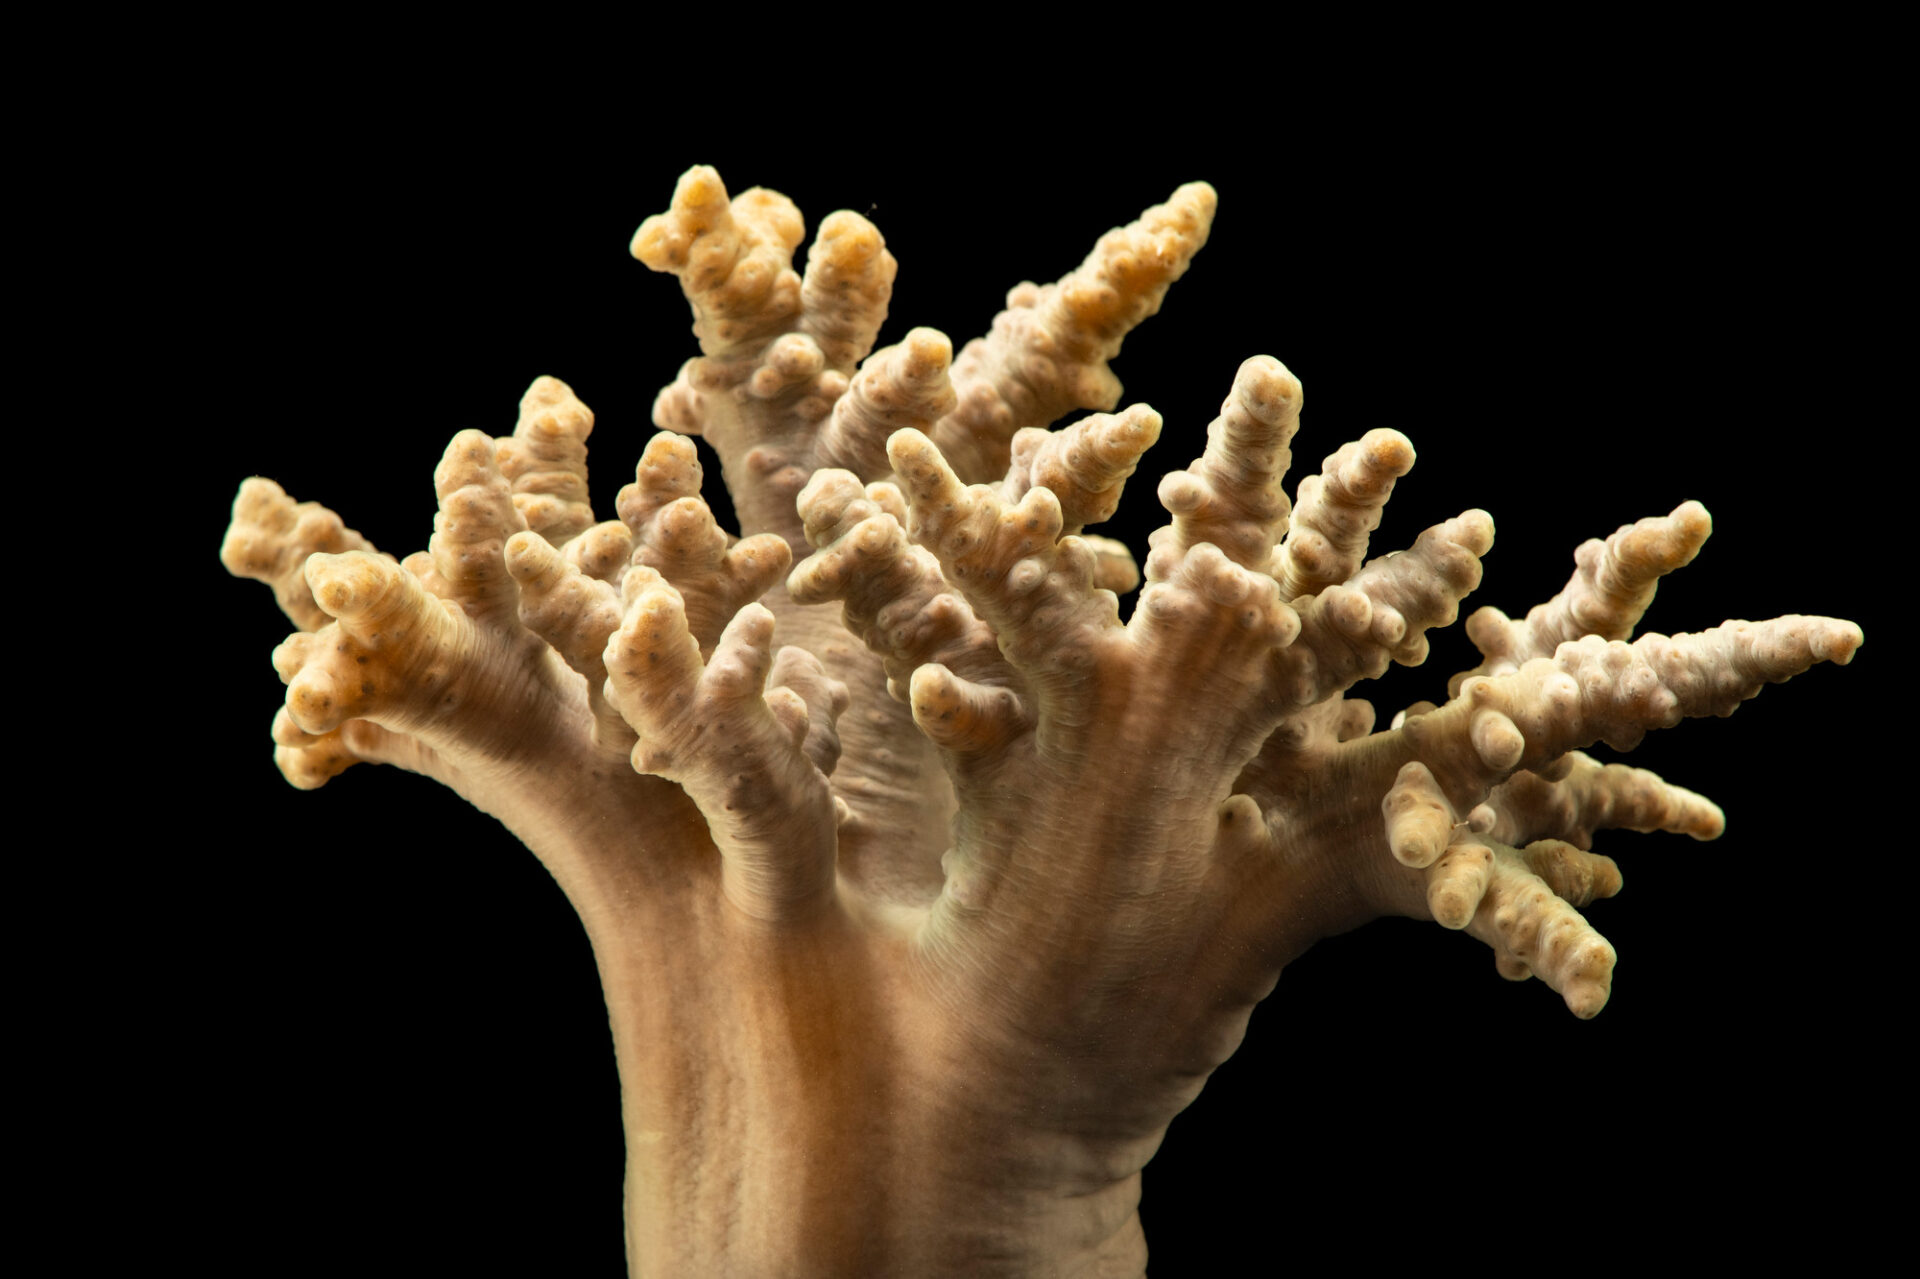 Photo: Soft finger coral or flexible leather coral (Sinularia sp.) at California Science Center in Los Angeles, California.